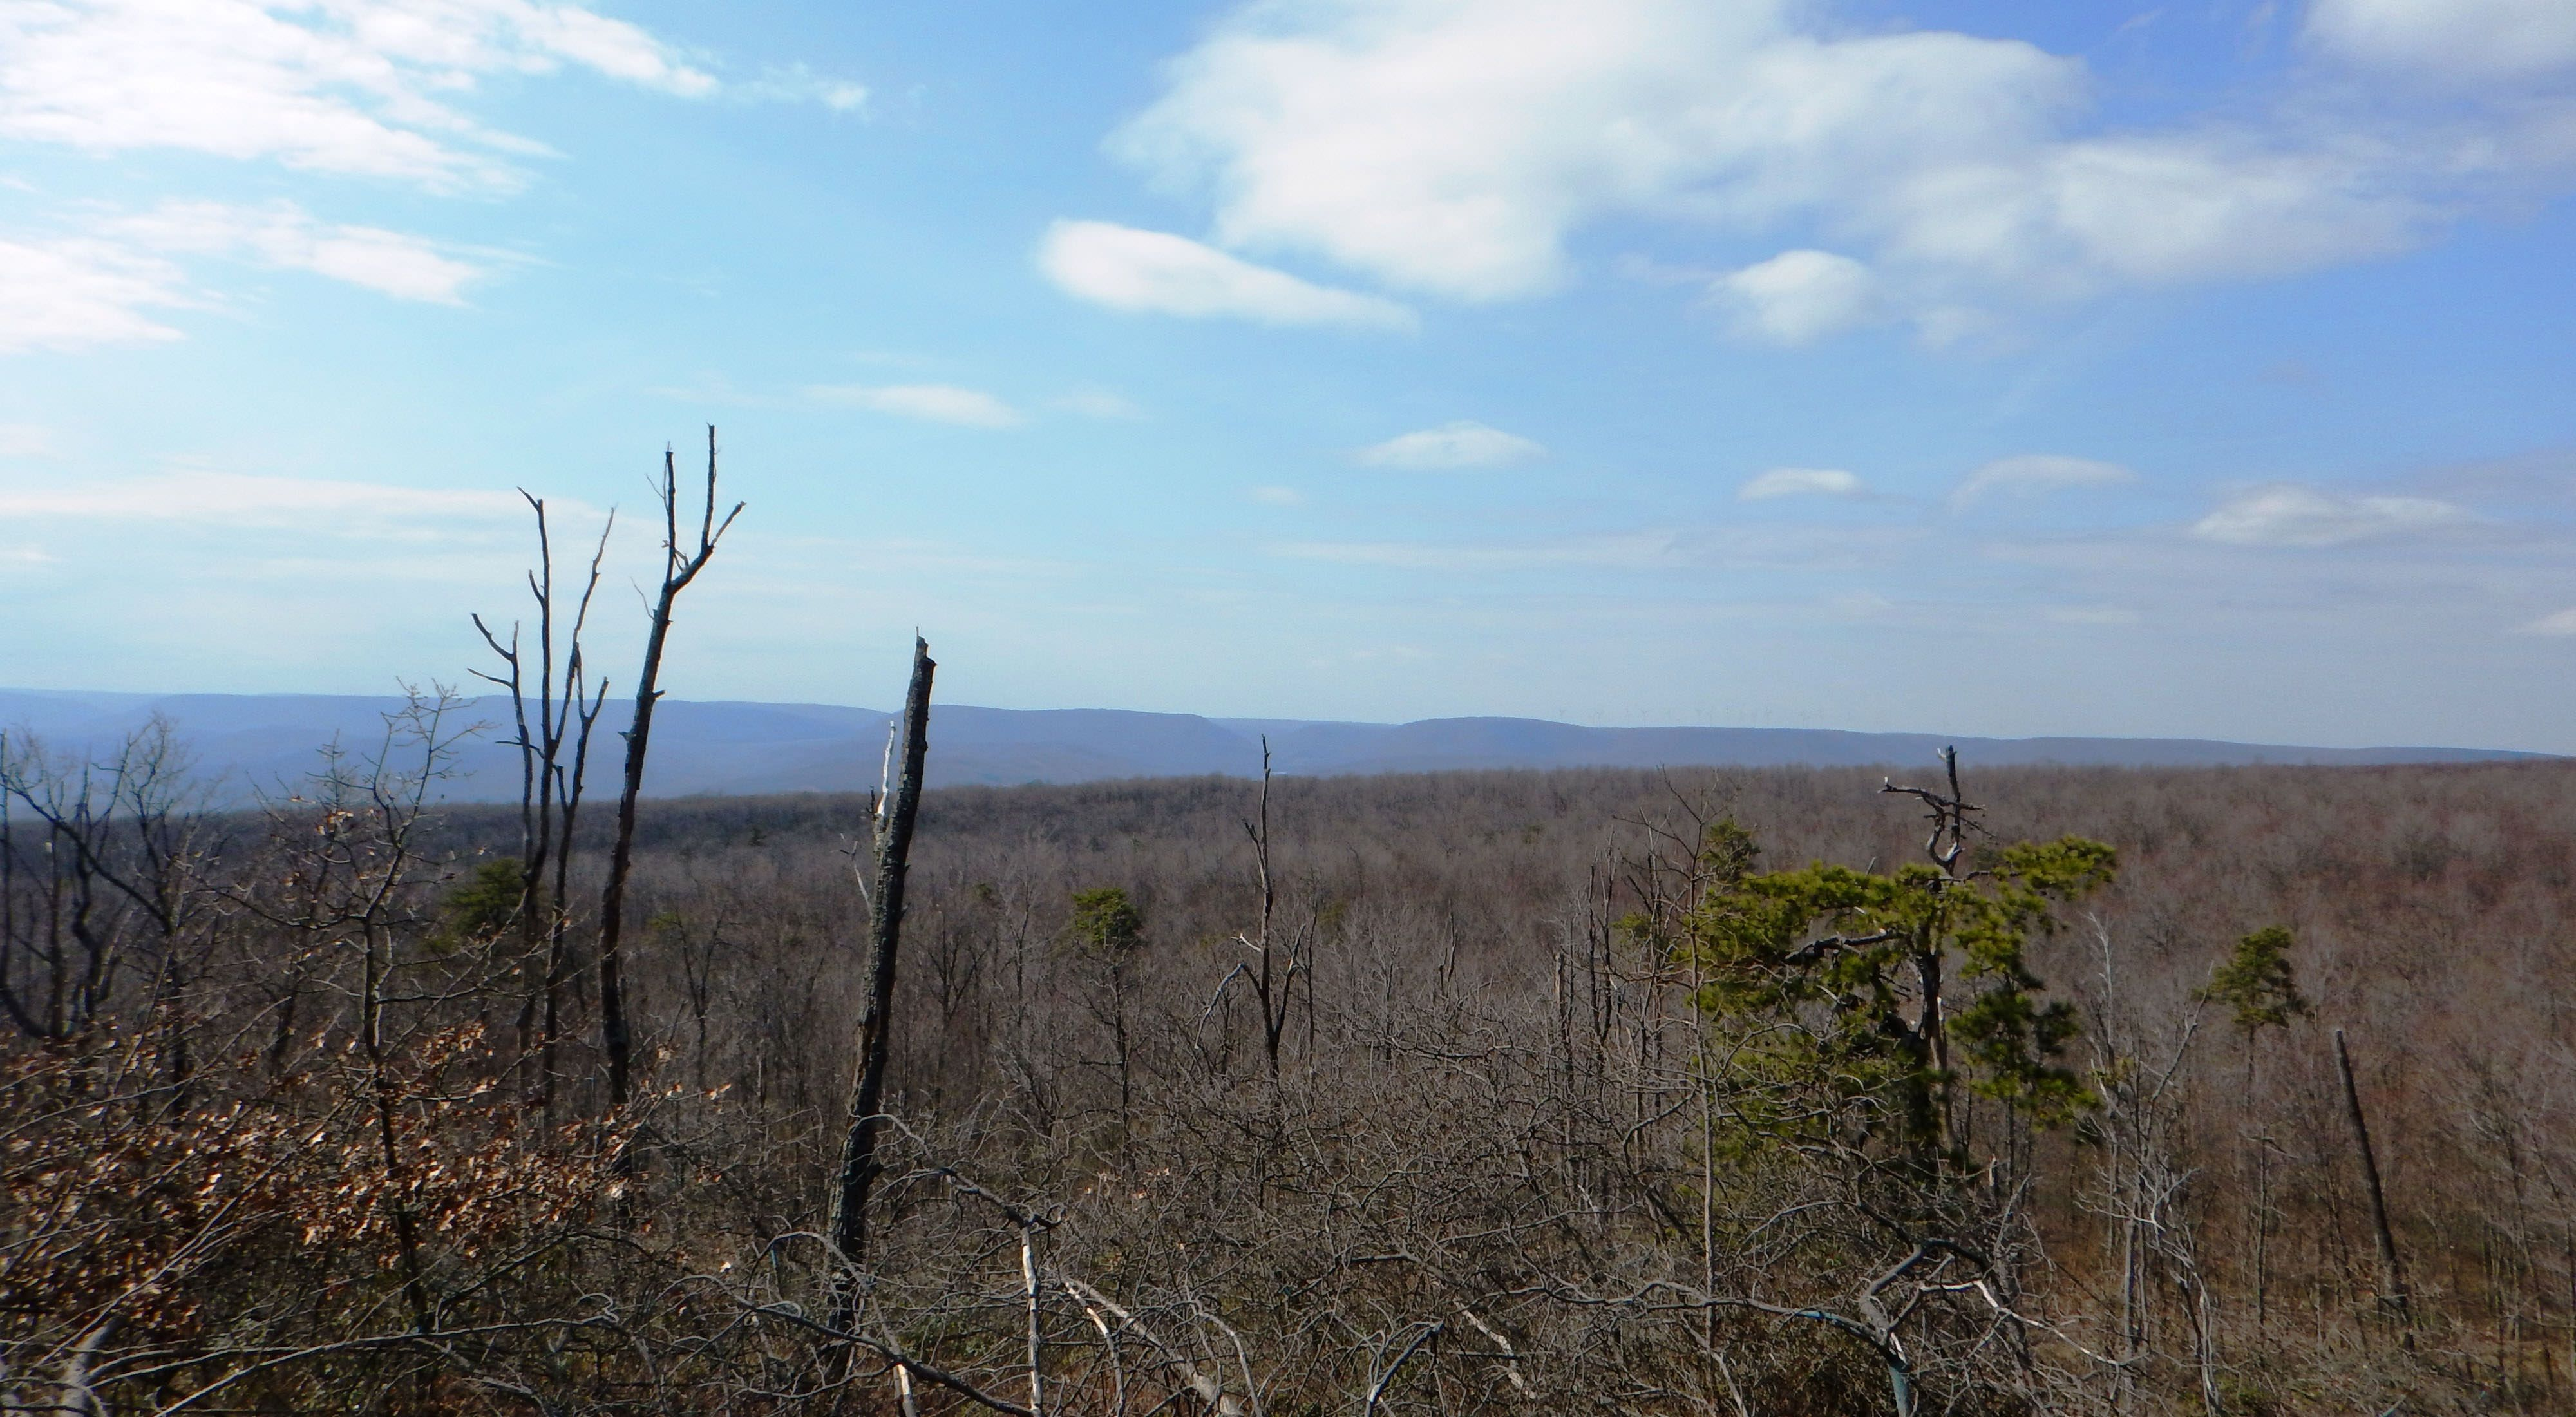 The bare tops of leafless trees in the foreground of a view that looks out over the top of a mountain to another mountain ridge in the far distance along the horizon.